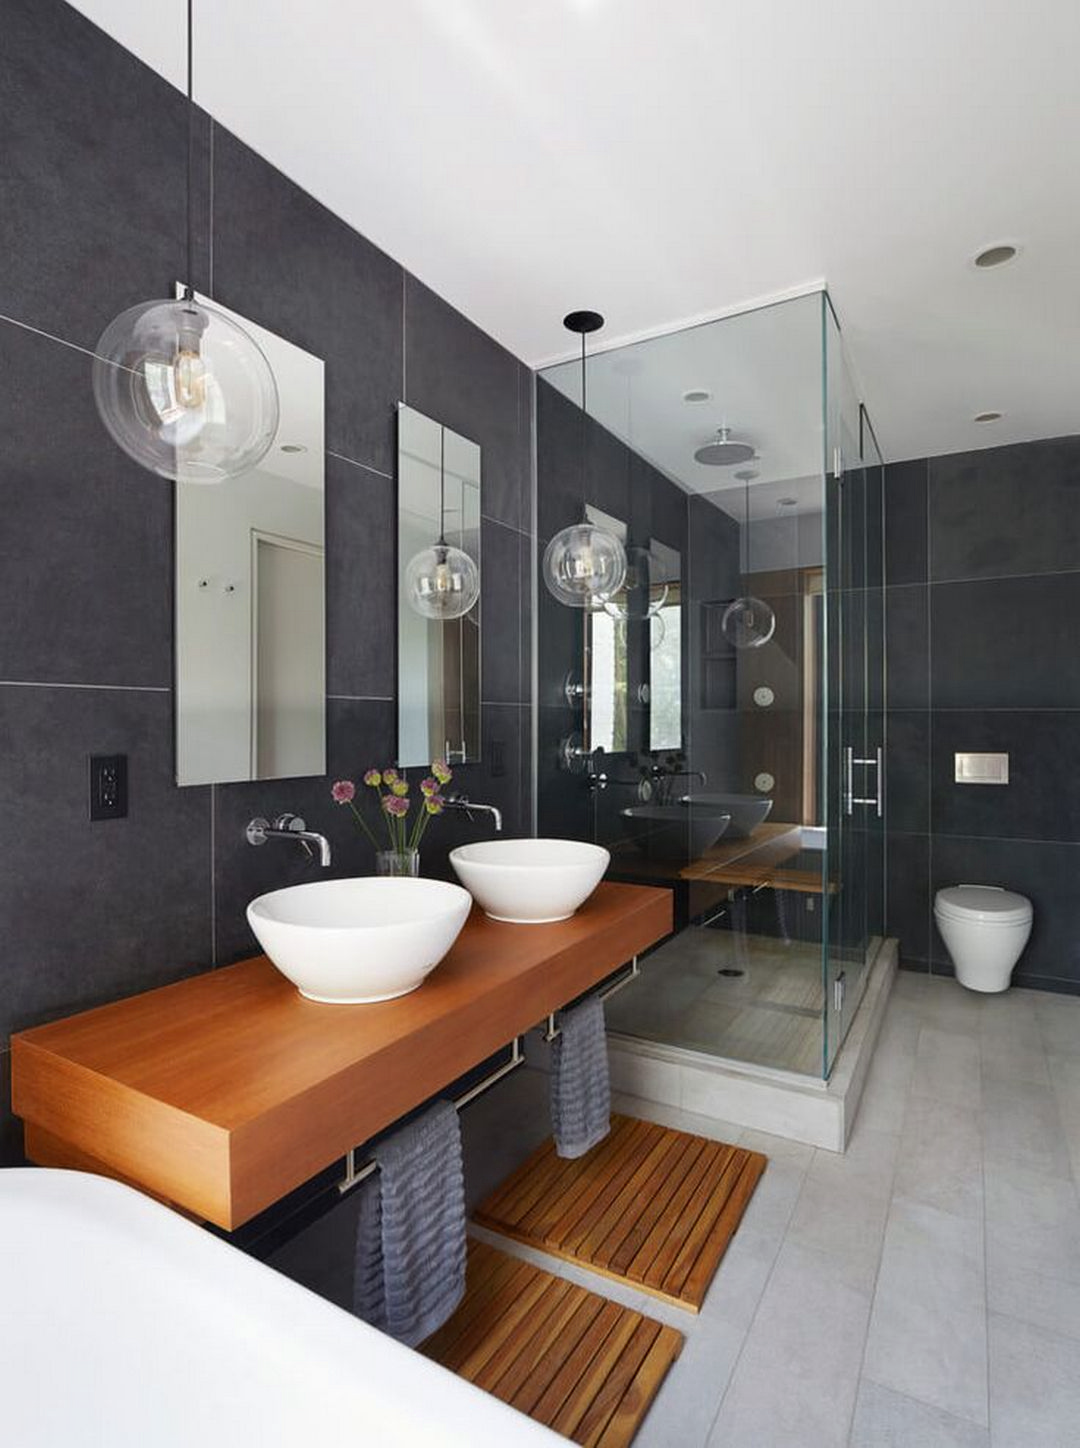 Modern bathroom interior designs fascinating photos https futuristarchitecture also top best with wall mounted ideas in rh co pinterest